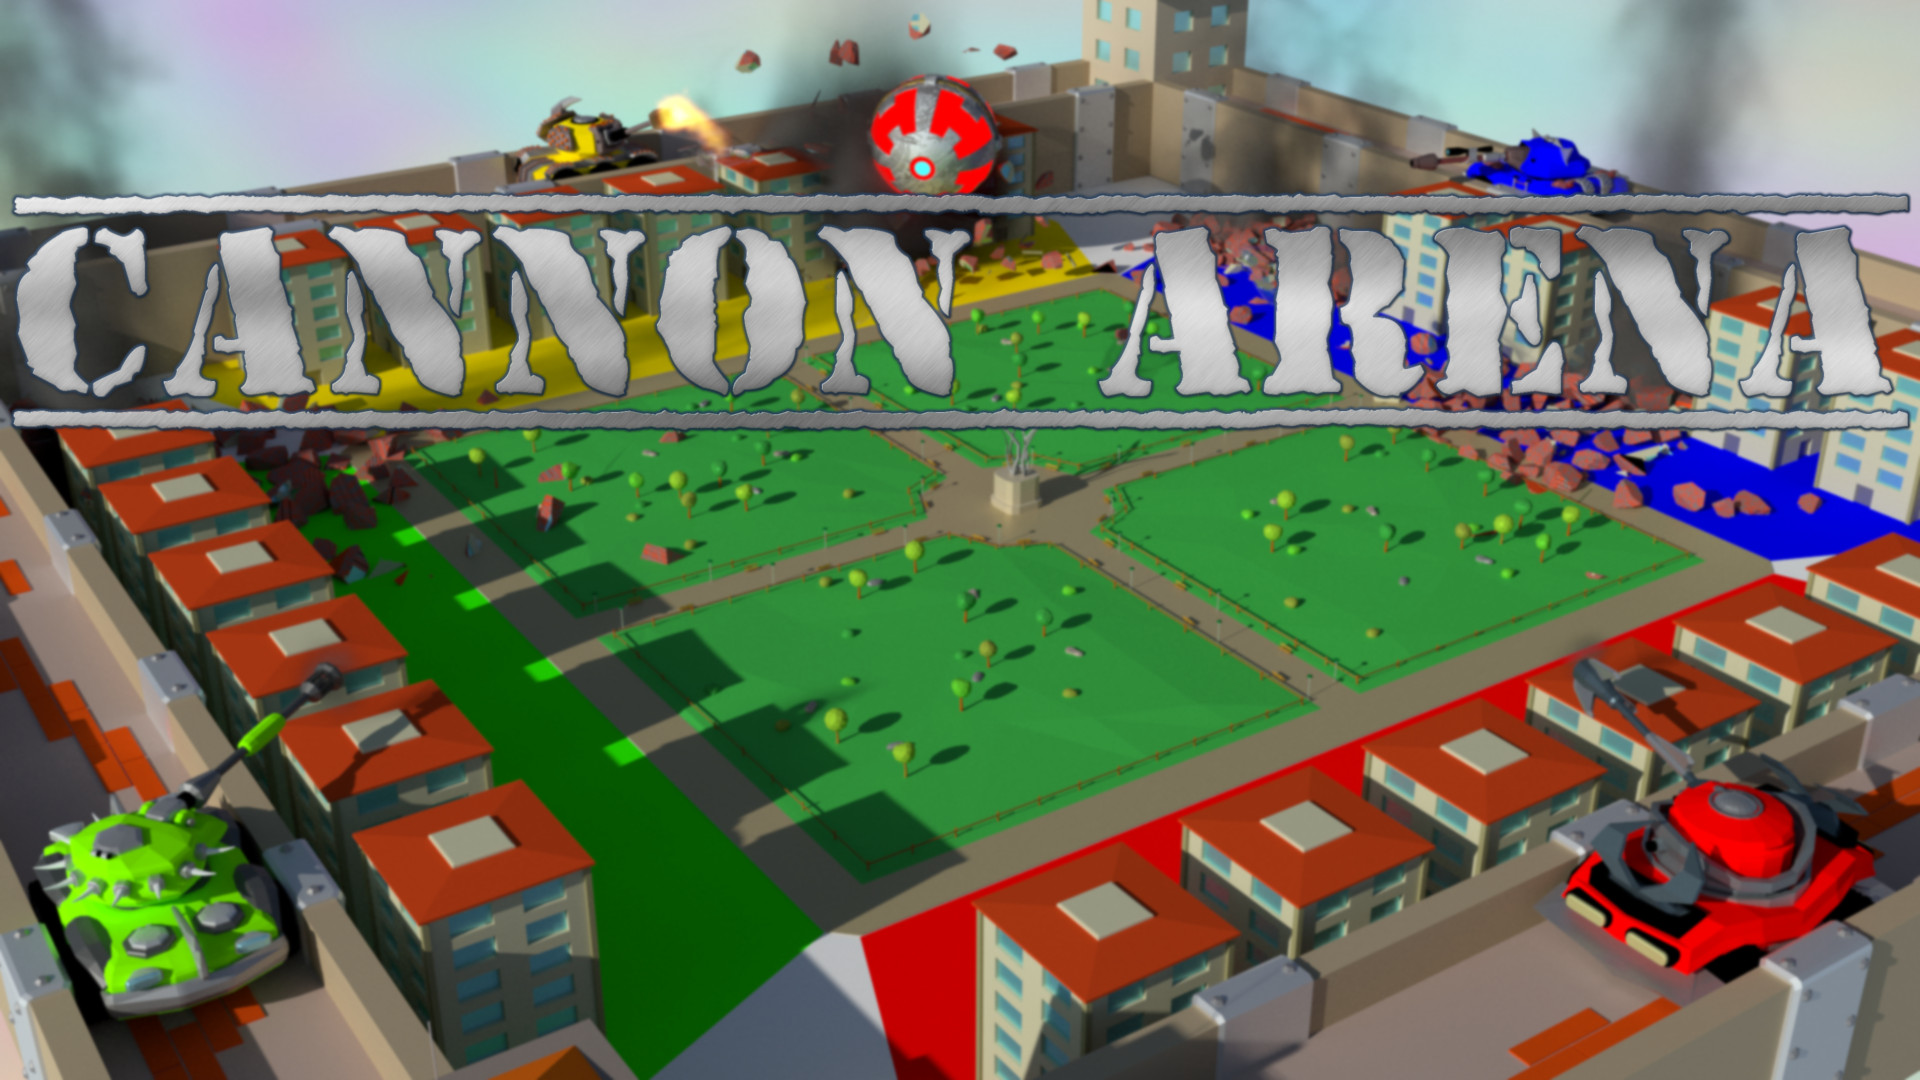 Cannon Arena - Cover Arena screenshot